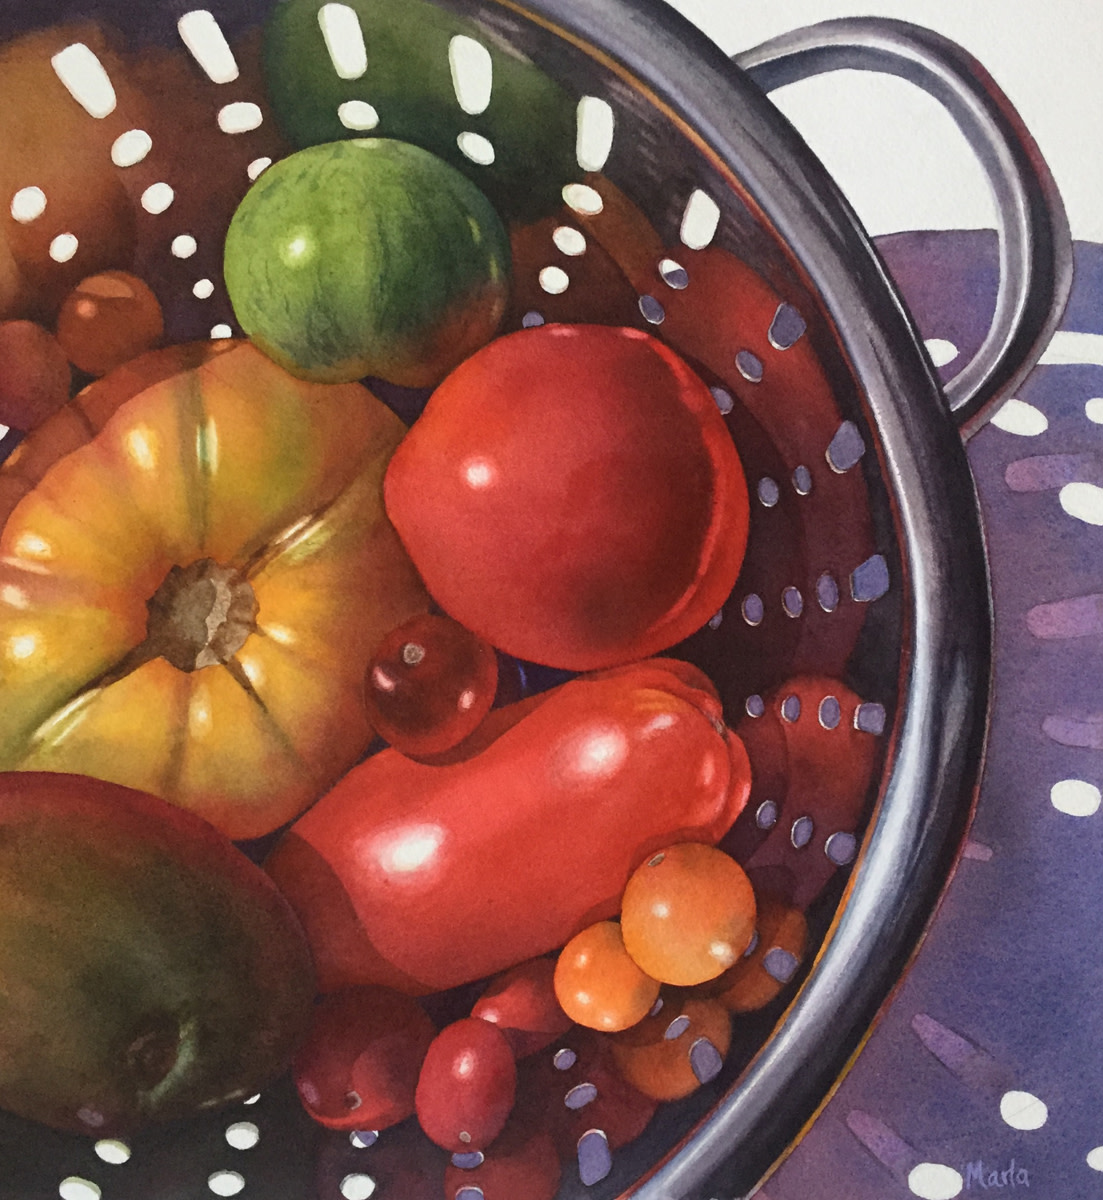 Tomato Tomahto by Marla Greenfield